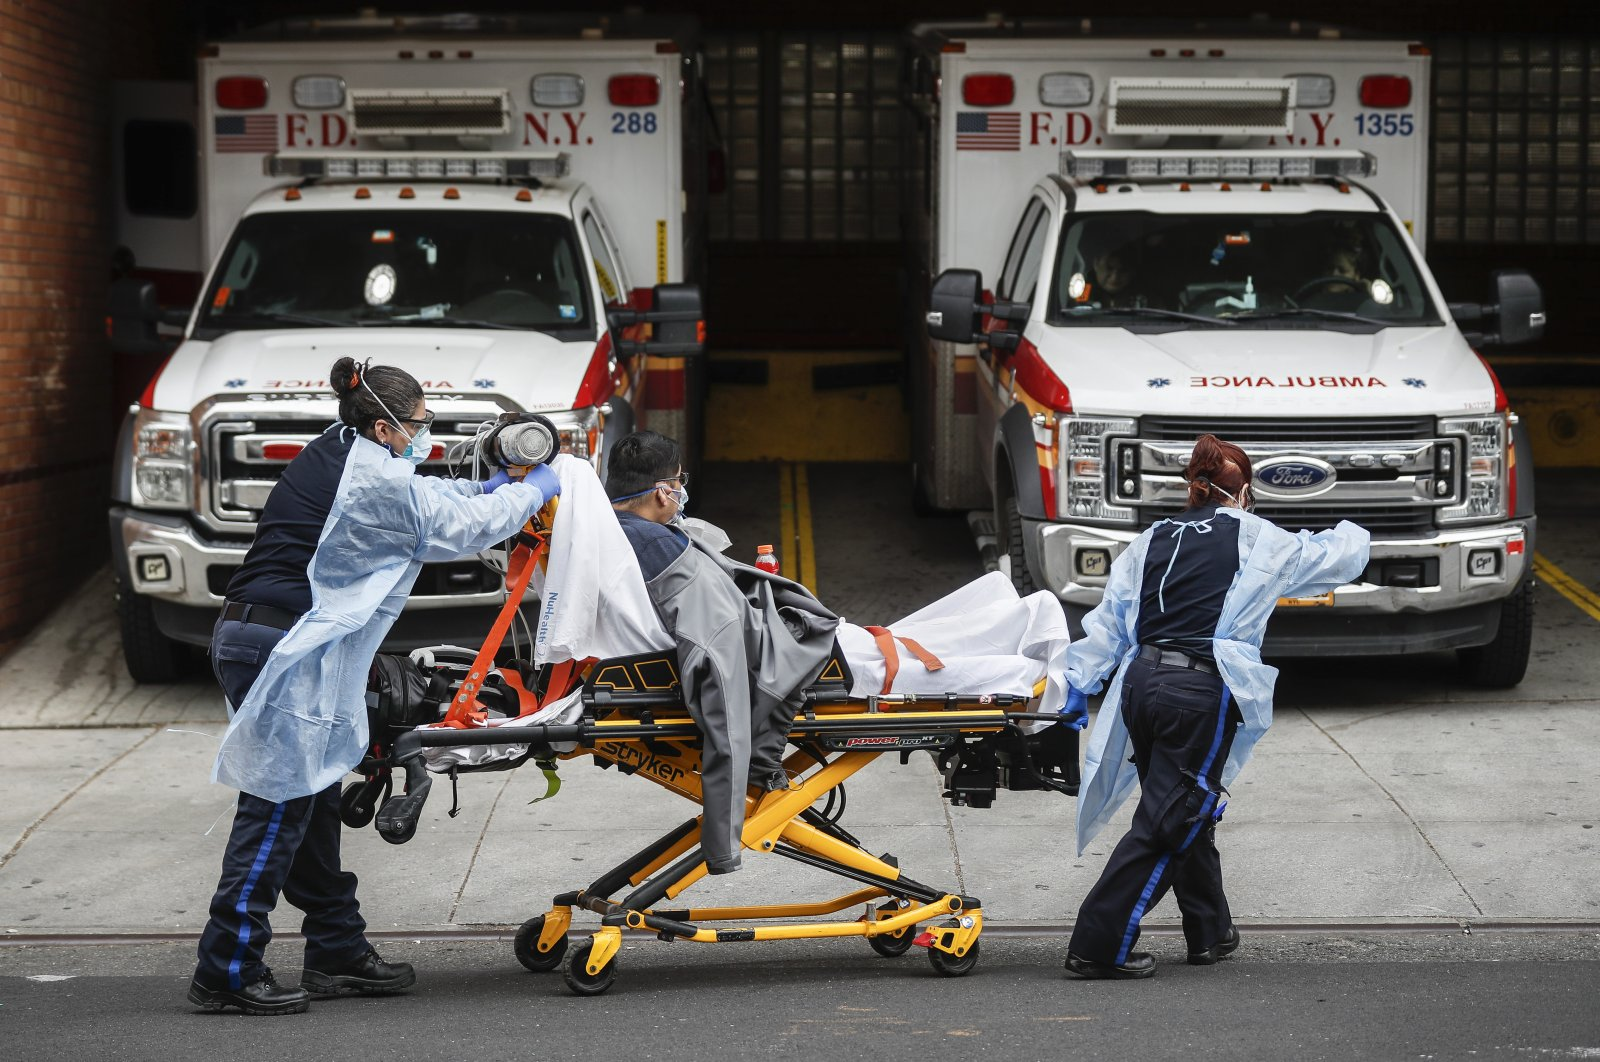 Patients are brought into Wyckoff Heights Medical Center by staff wearing personal protective gear due to COVID-19 concerns, Tuesday, April 7, 2020, in the Brooklyn borough of New York. (AP Photo)